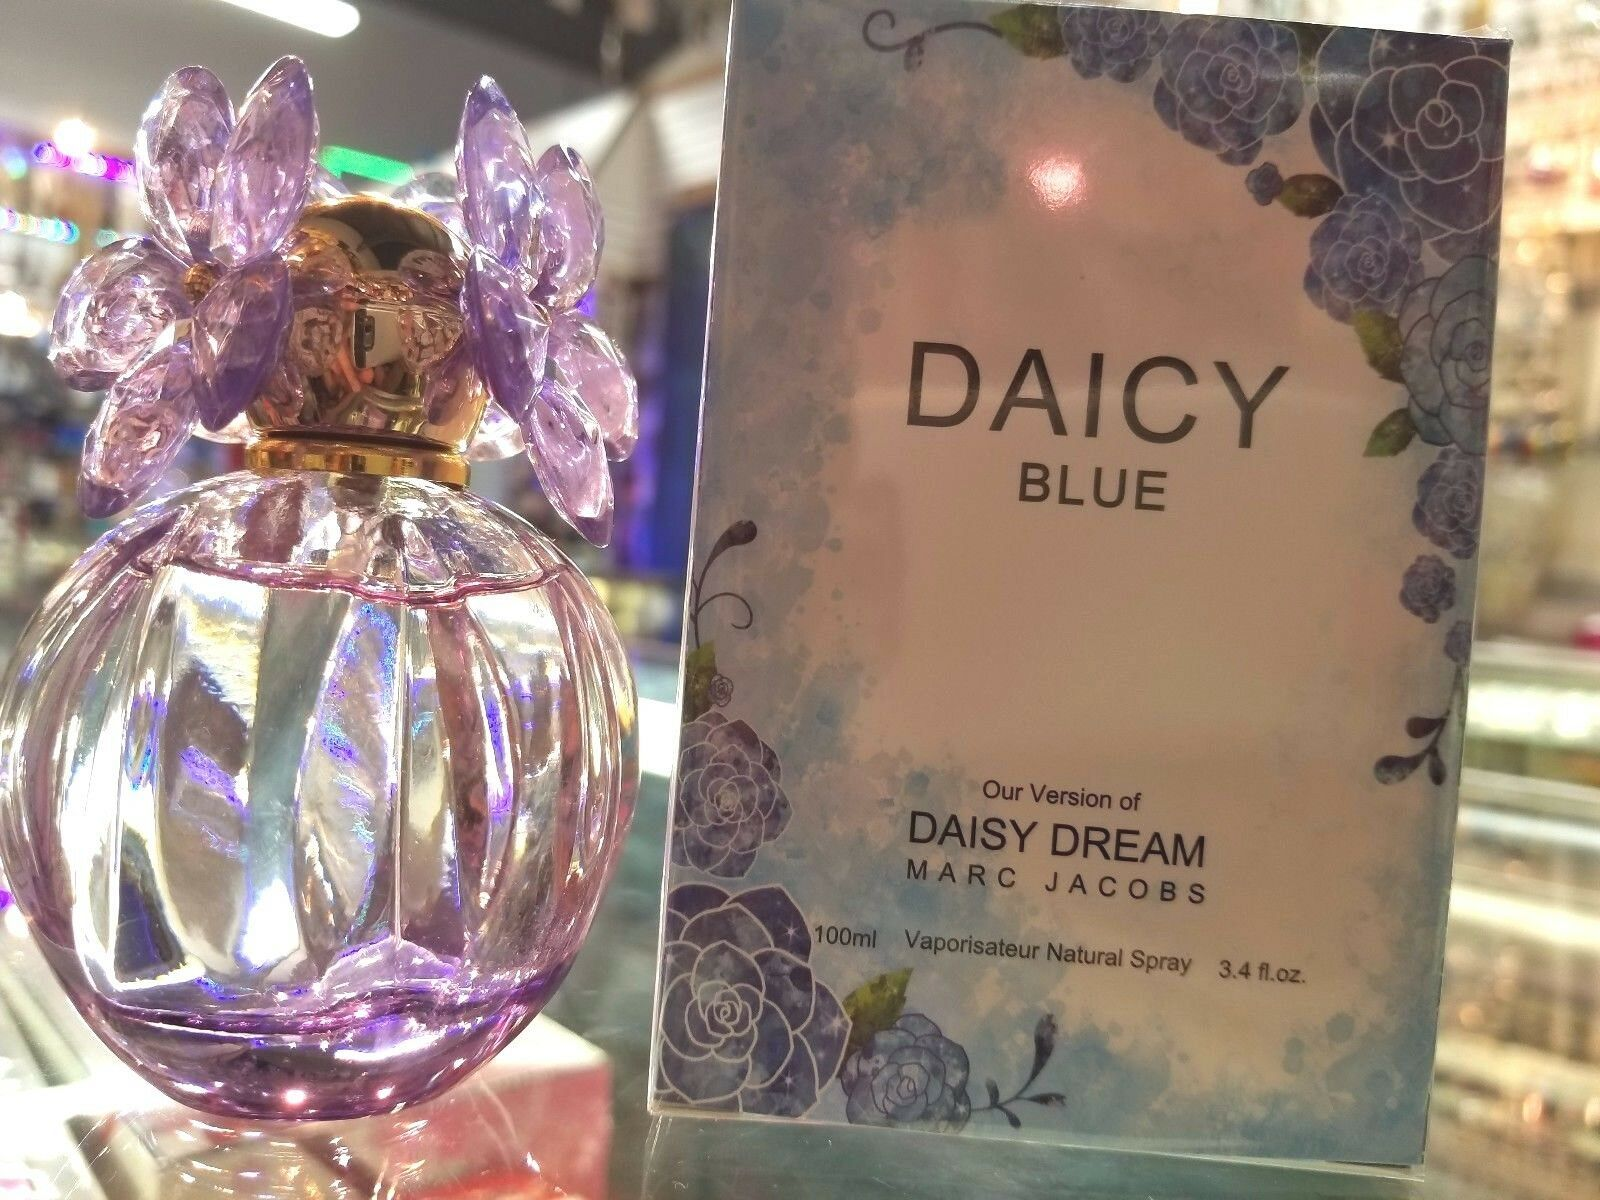 Primary image for Daicy Blue Our Version of Daisy Dream Marc Jacobs 3.4 oz Spray NEW IN SEALED BOX